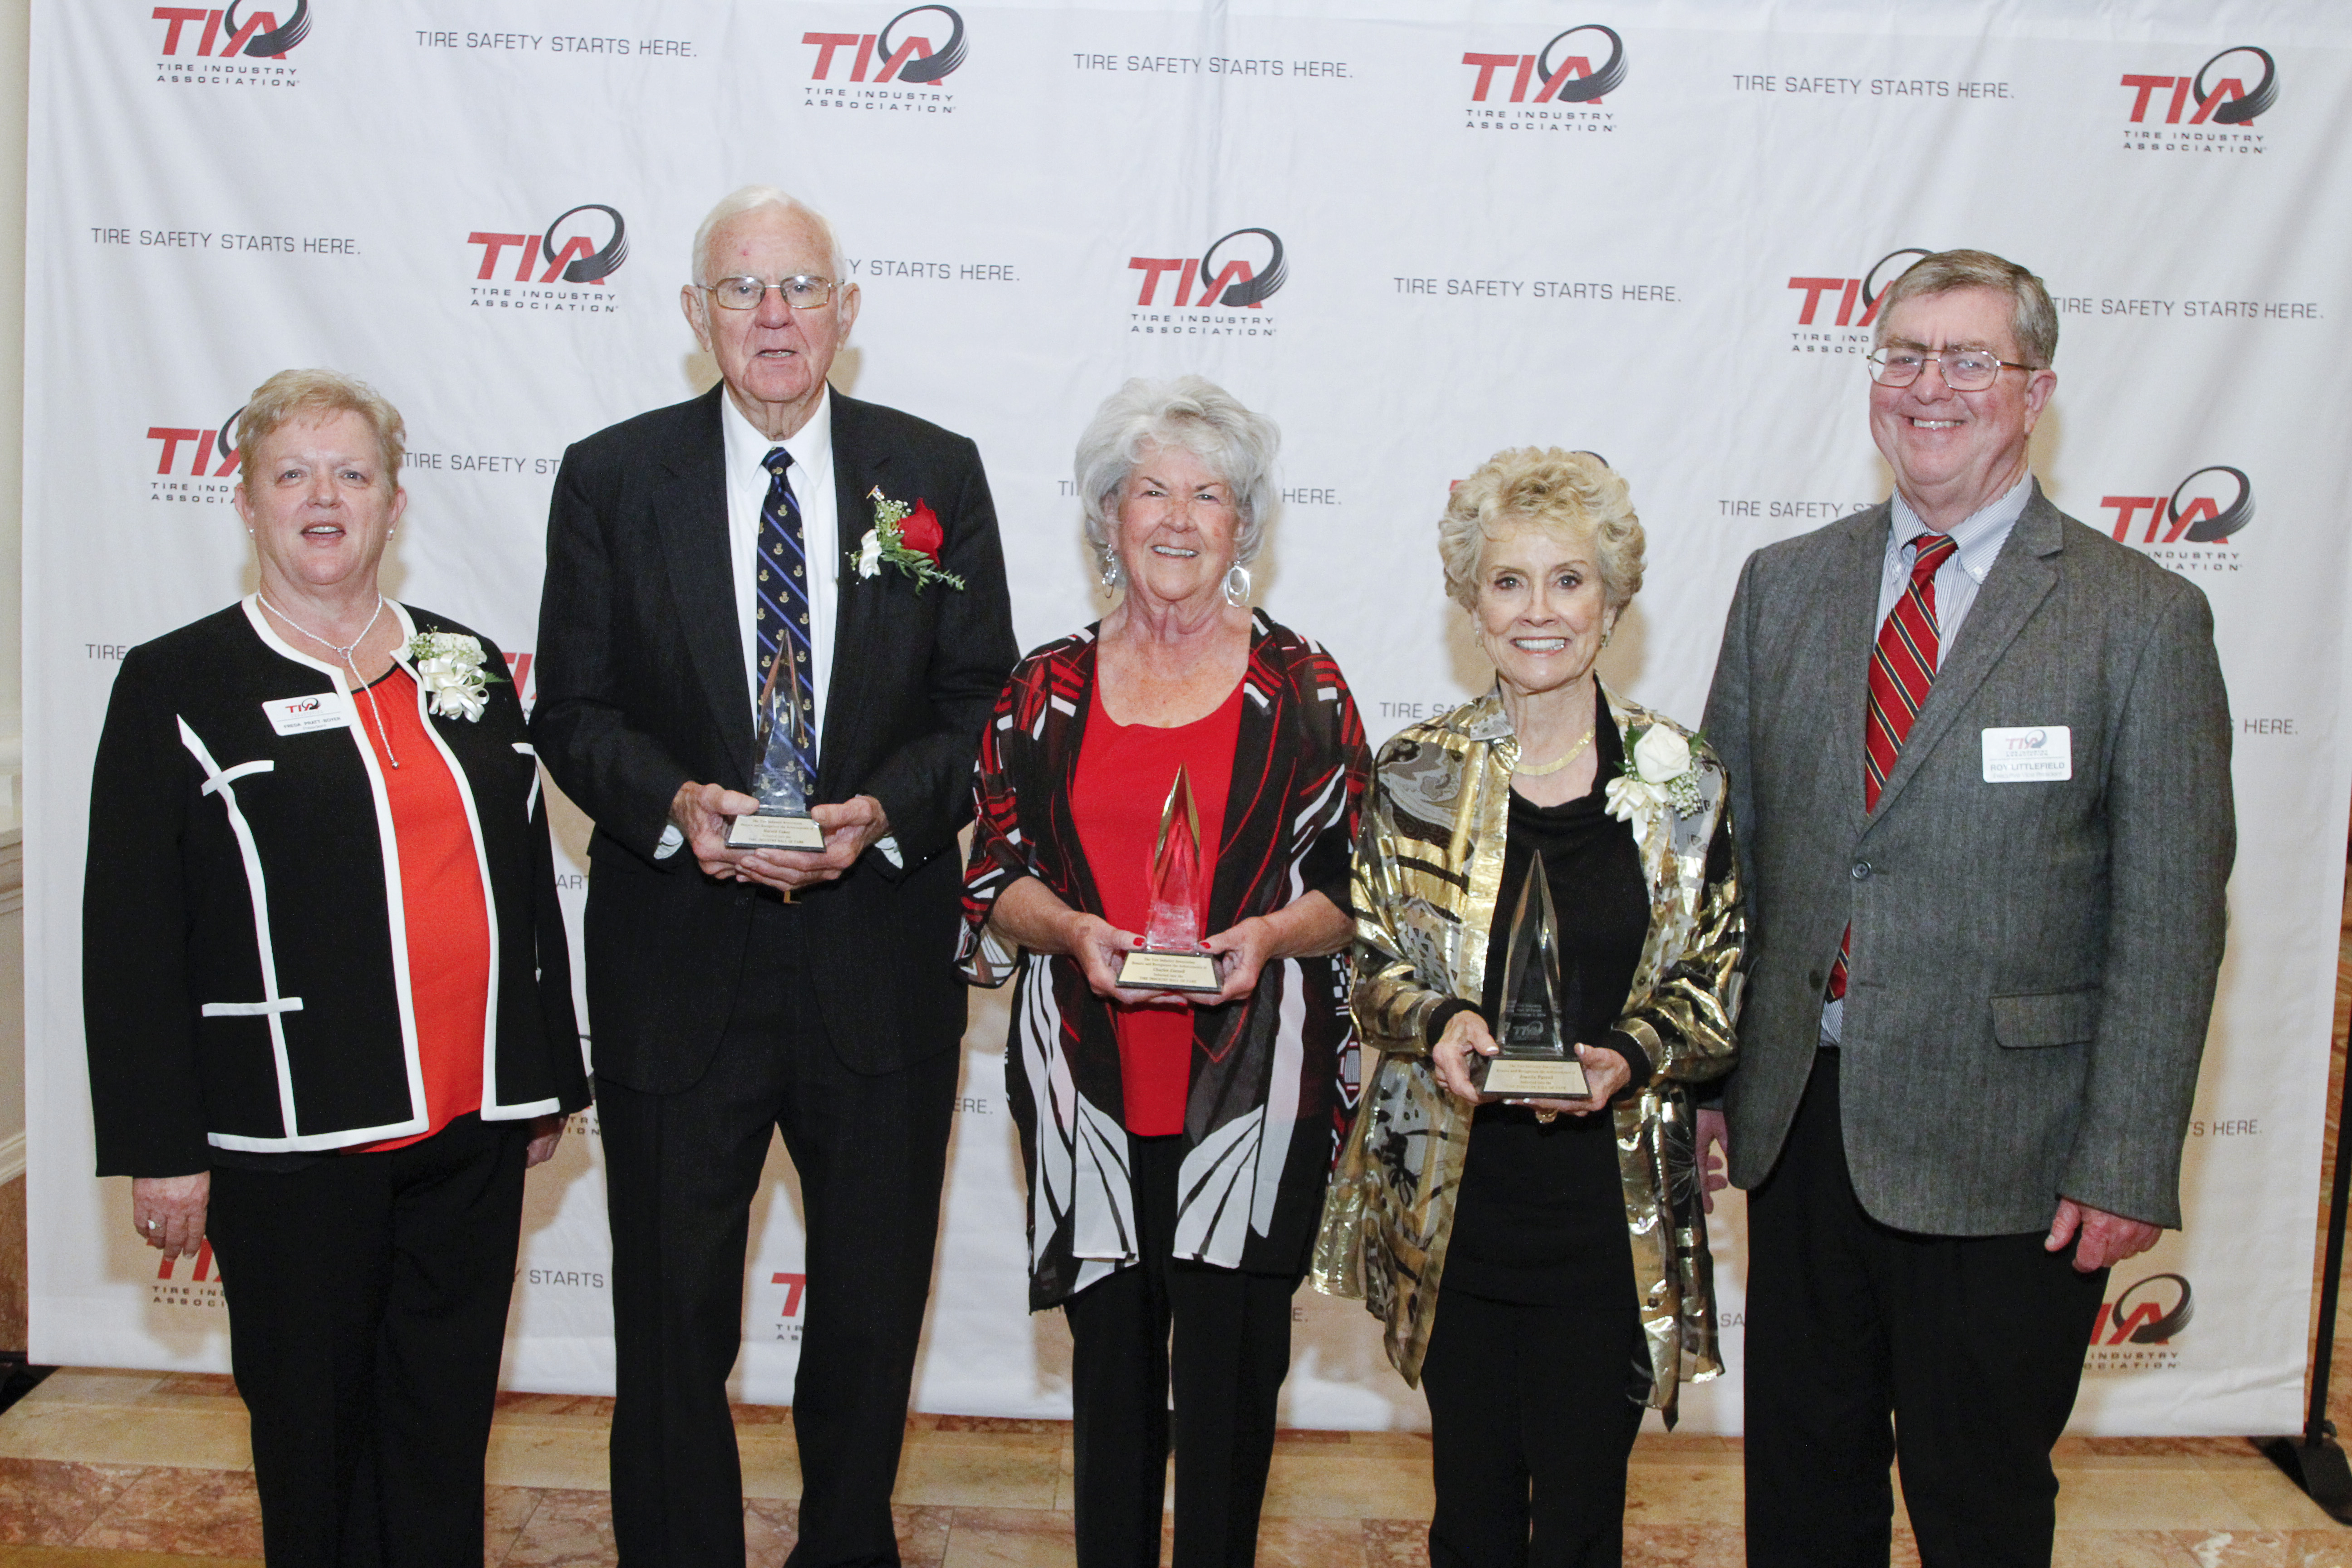 TIA seeks nominations for Hall of Fame